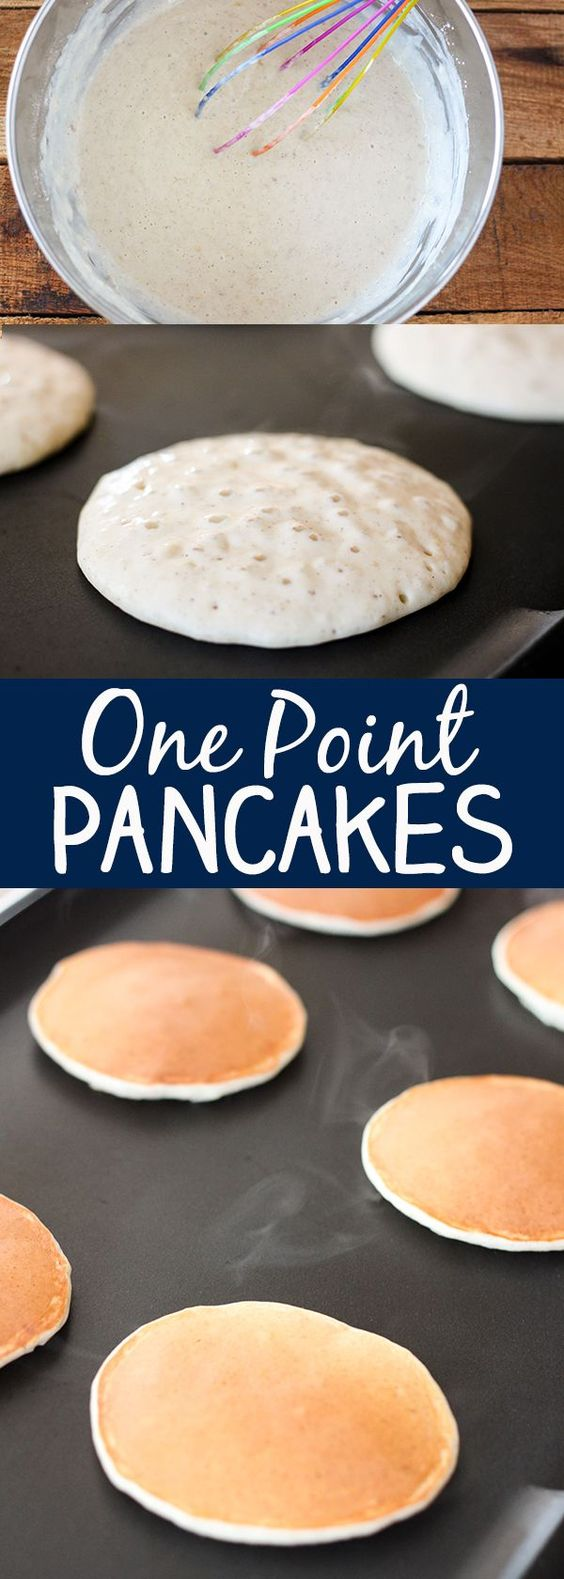 SKINNY ONE POINT WEIGHT WATCHER PANCAKE #Skinny #One #Pointrecipe #Weightrecipe #Pancake #Pancekrecipe #Dessert